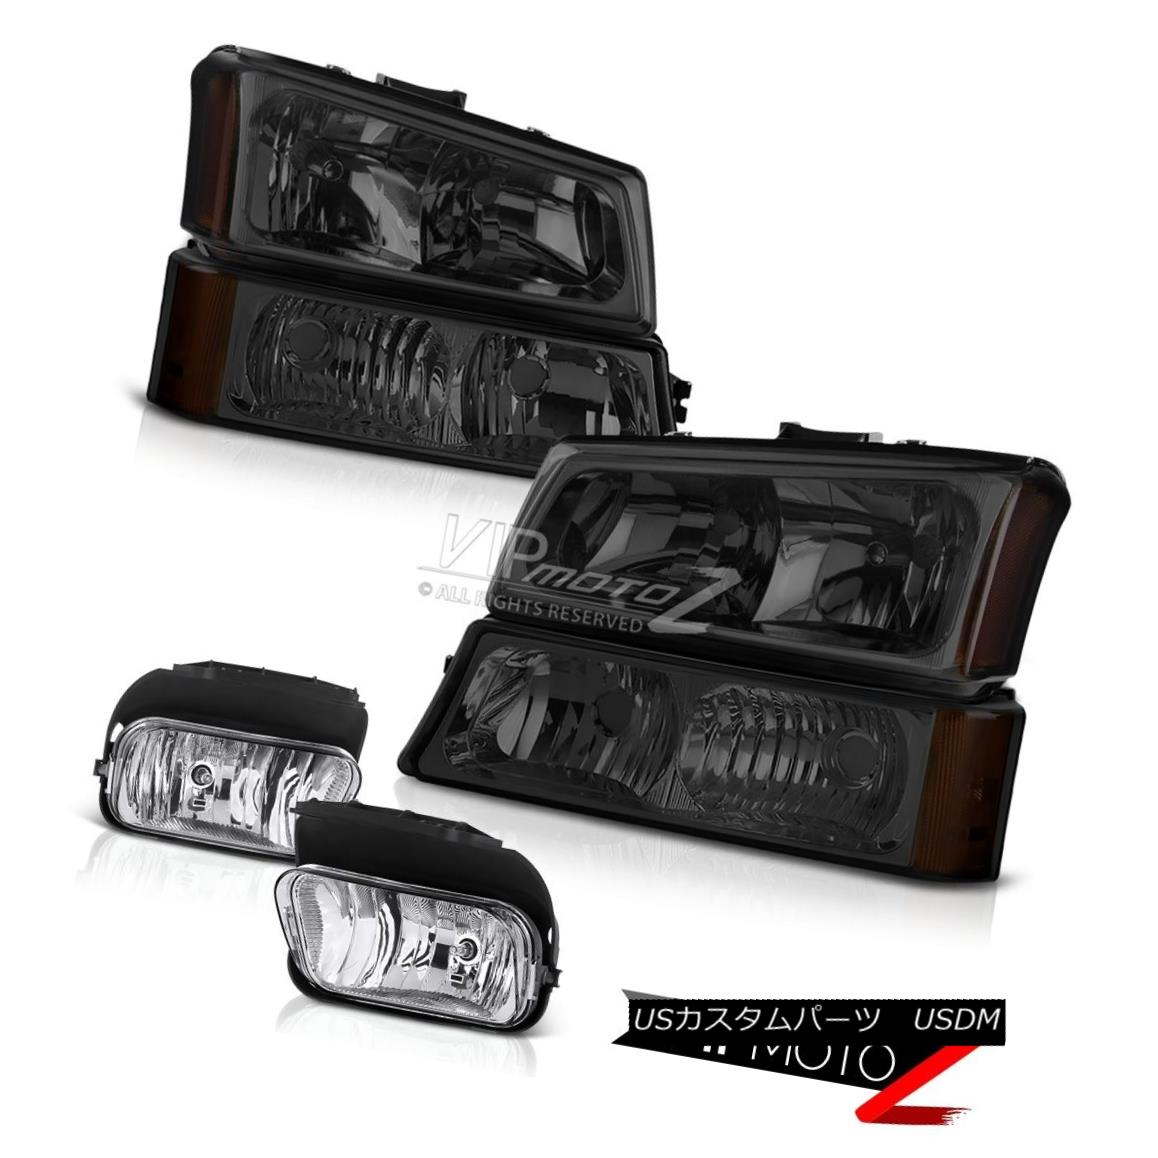 ヘッドライト Dark Front Headlight Bumper Corner Lamp 03-06 Silverado DuraMax Driving Foglight ダークフロントヘッドライトバンパーコーナーランプ03-06 Silverado DuraMax Driving Foglight